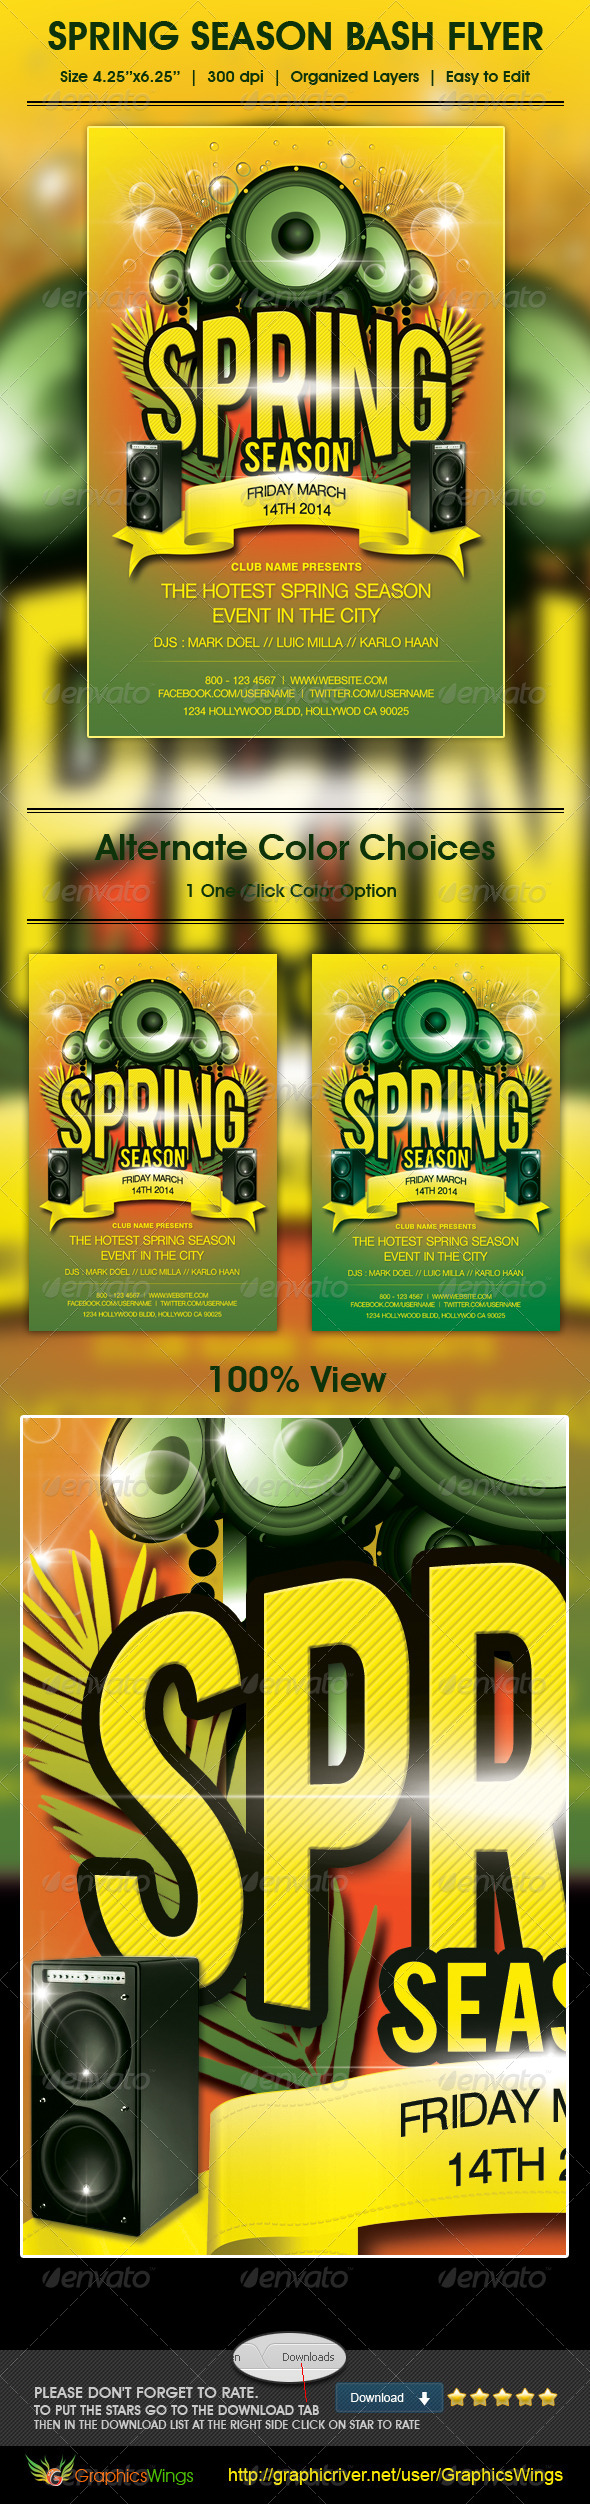 GraphicRiver Spring Season Bash Flyer Template 4515204